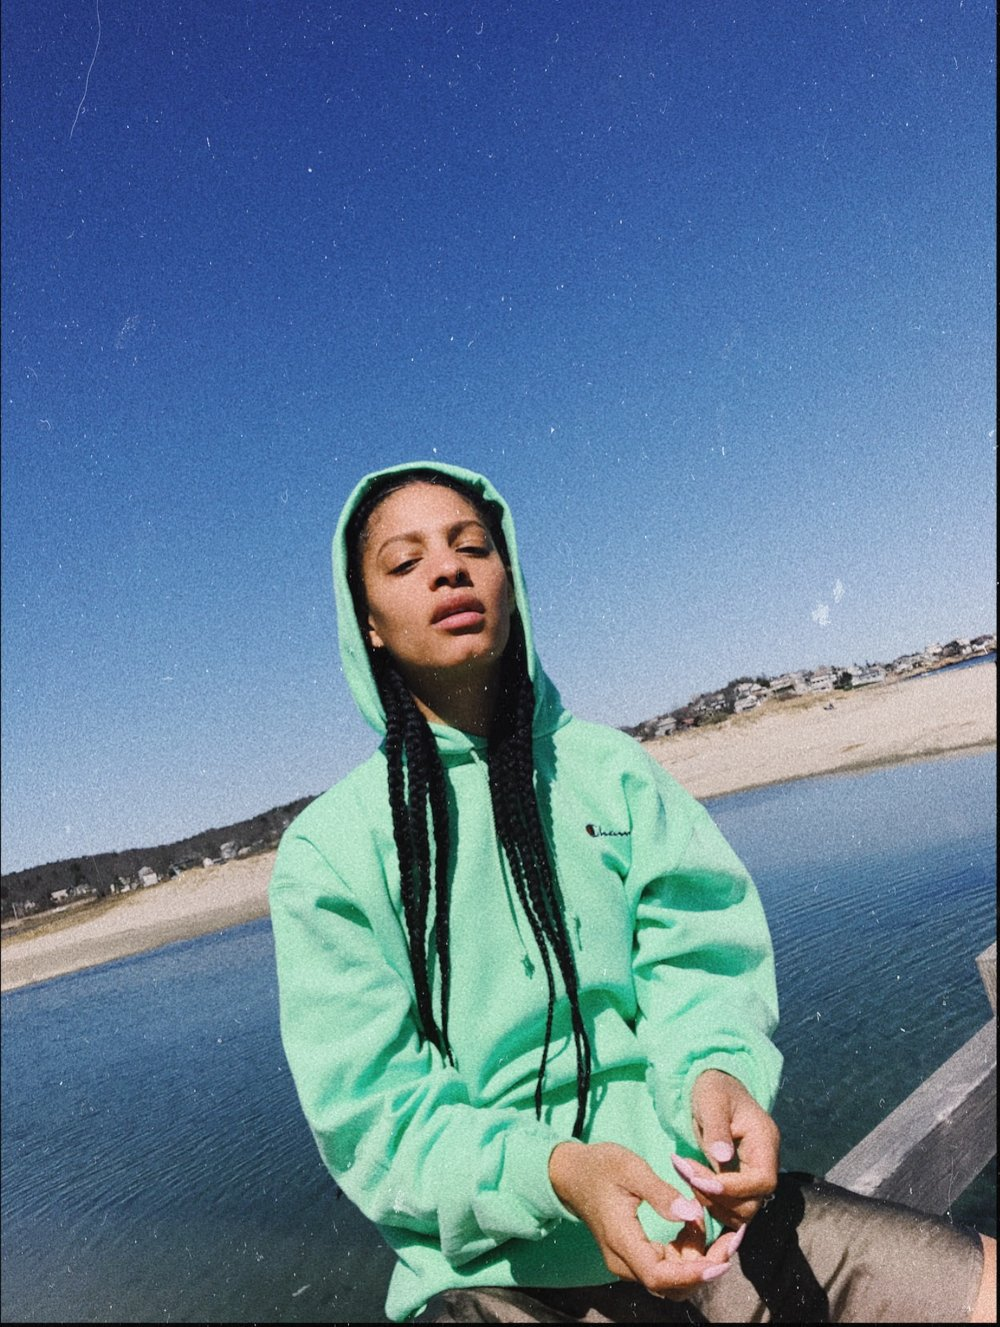 Neon Champion Hoodie on Claire Leana Millar